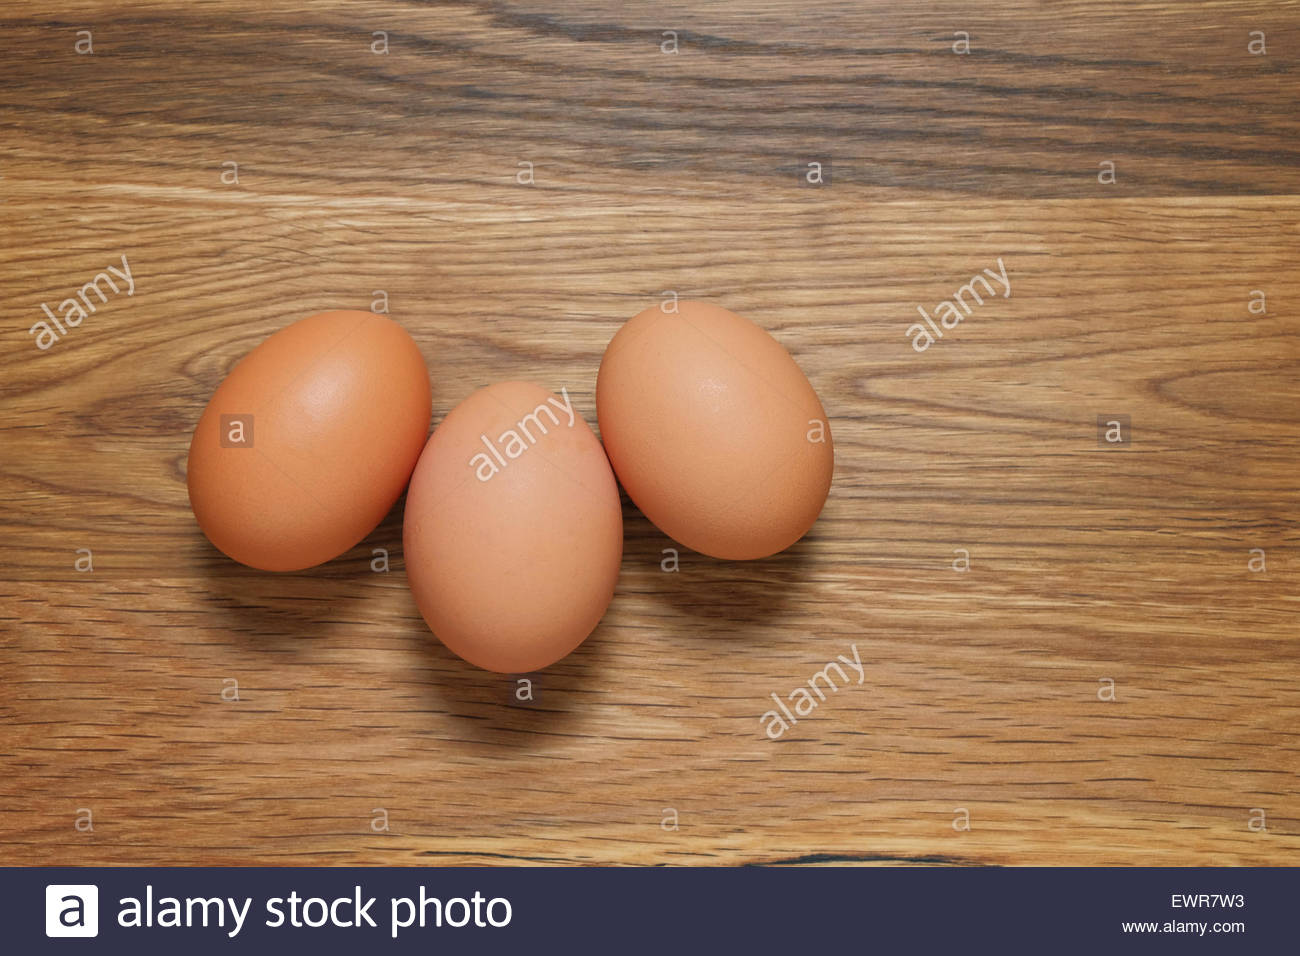 Three brown hens eggs shot from above on a wooden table - Stock Image